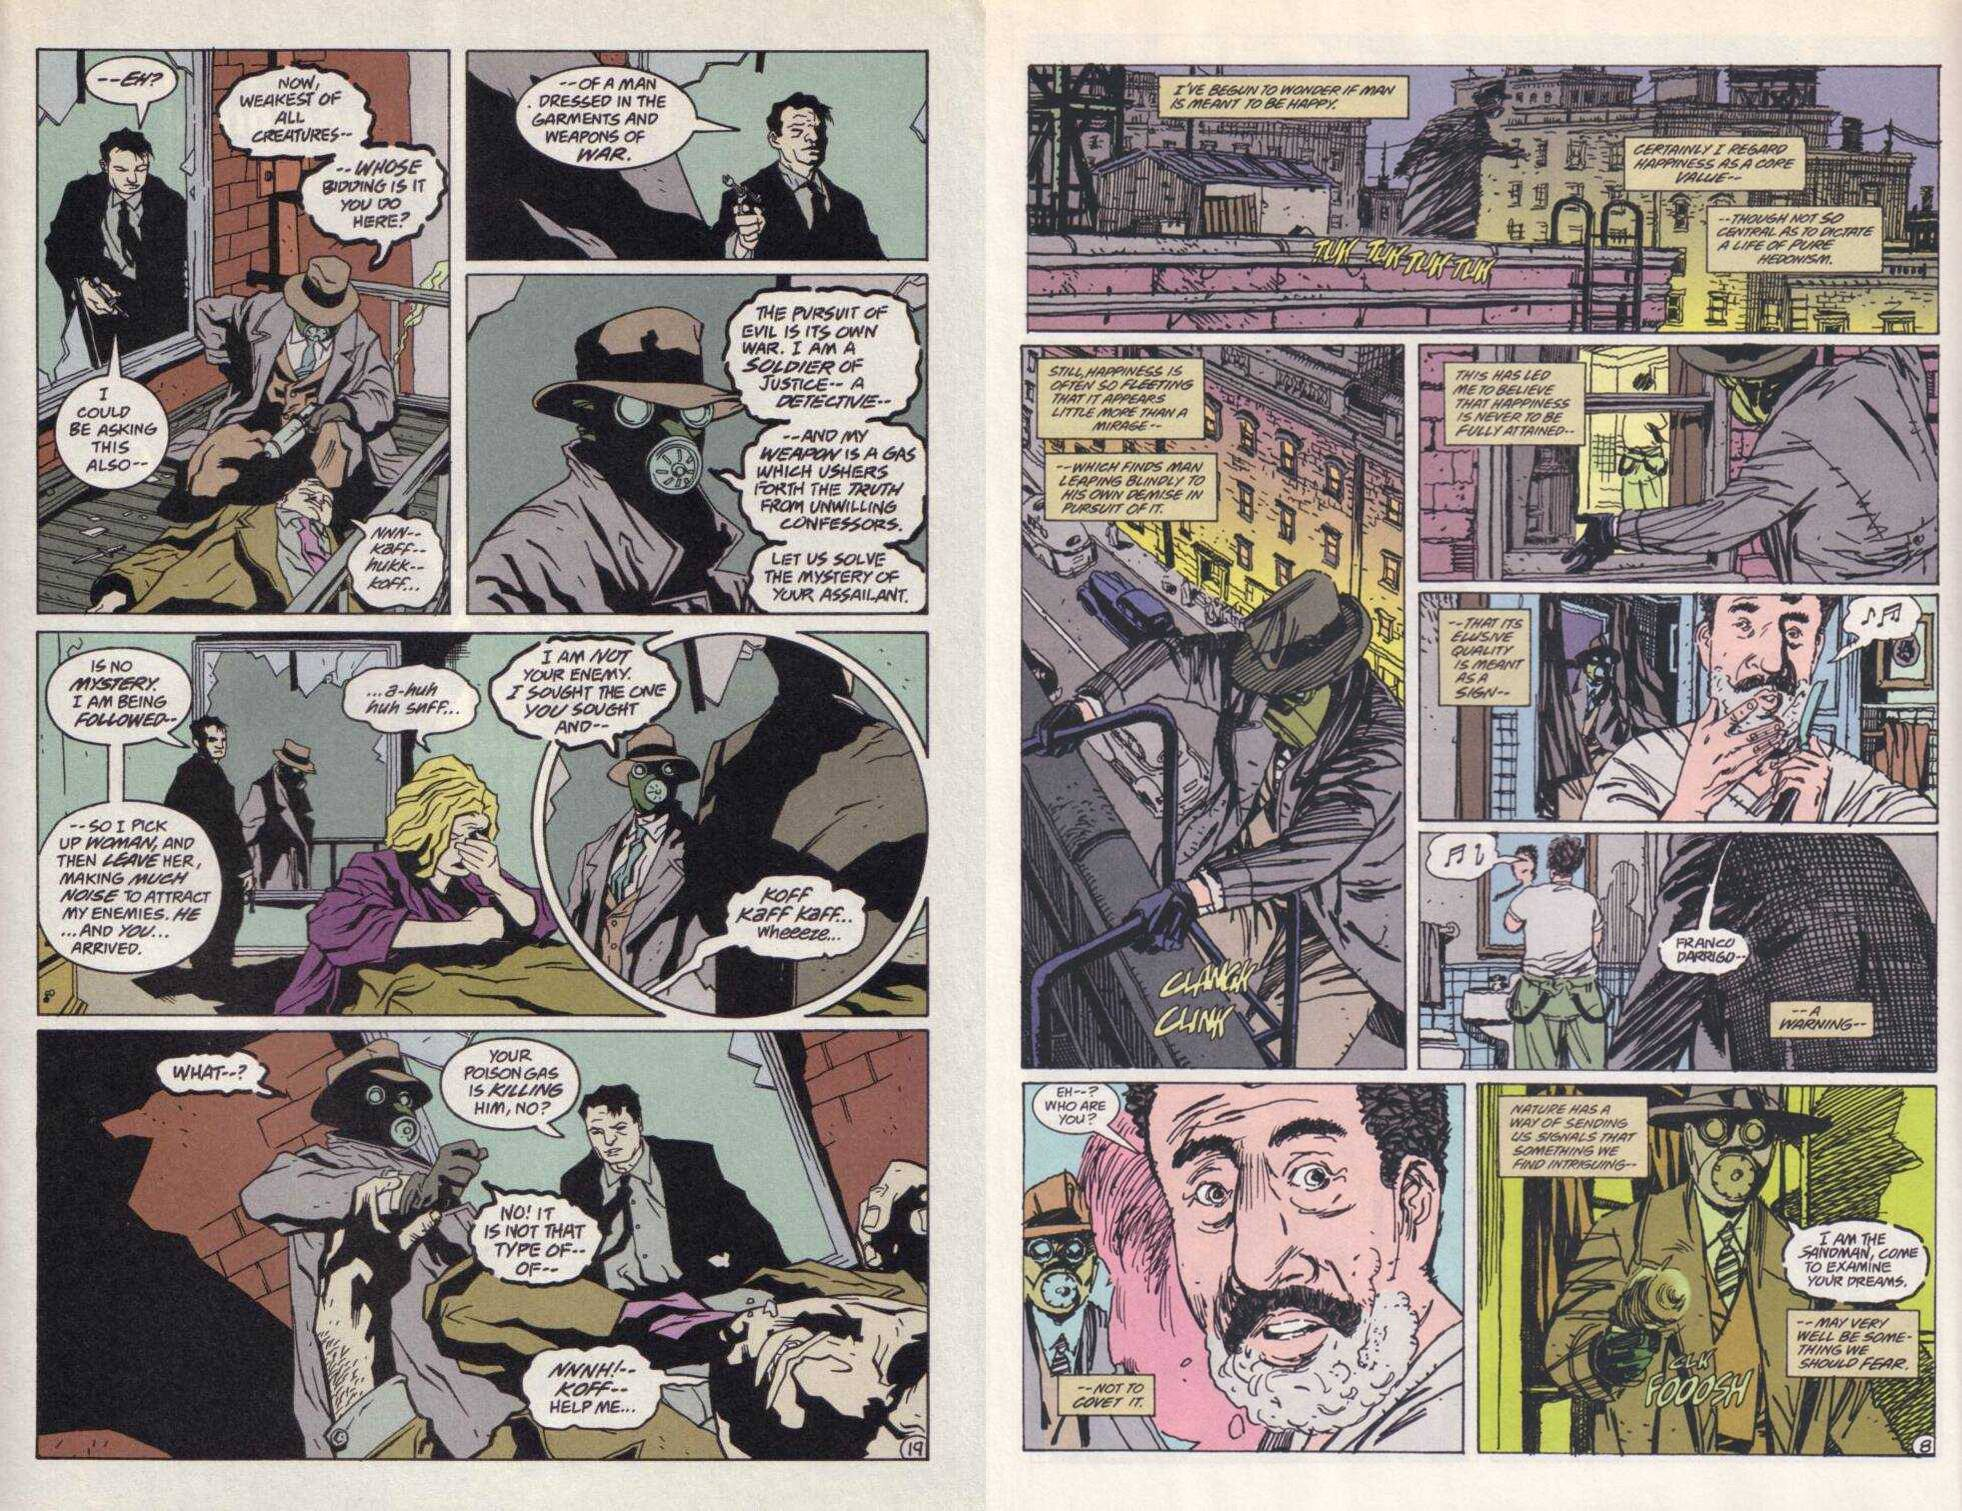 Sandman Mystery The Blackhawk and The Return of the Scarleet Ghost review